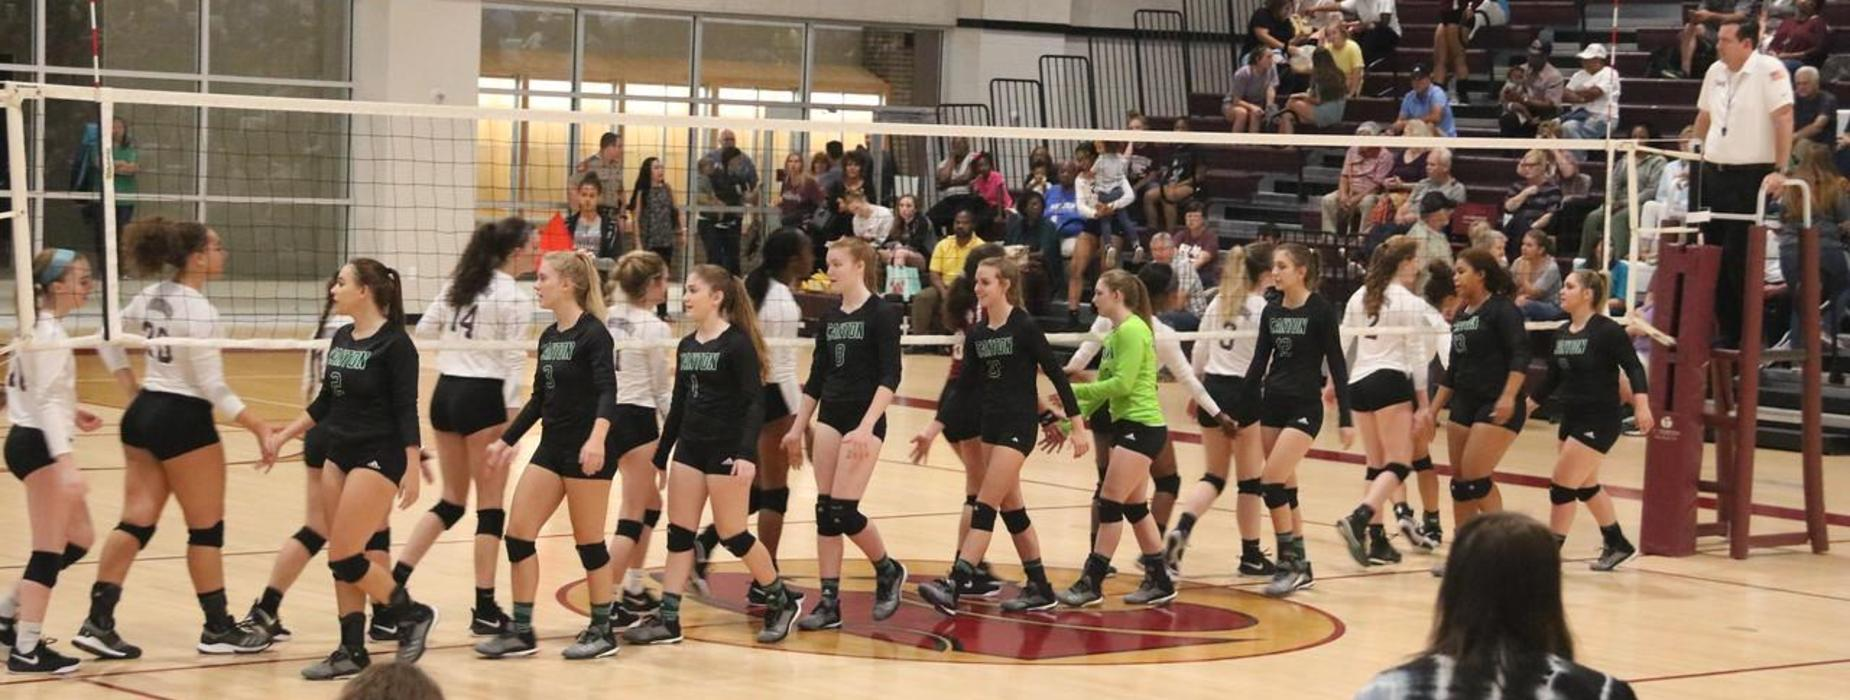 2018-19 Volleyball Game